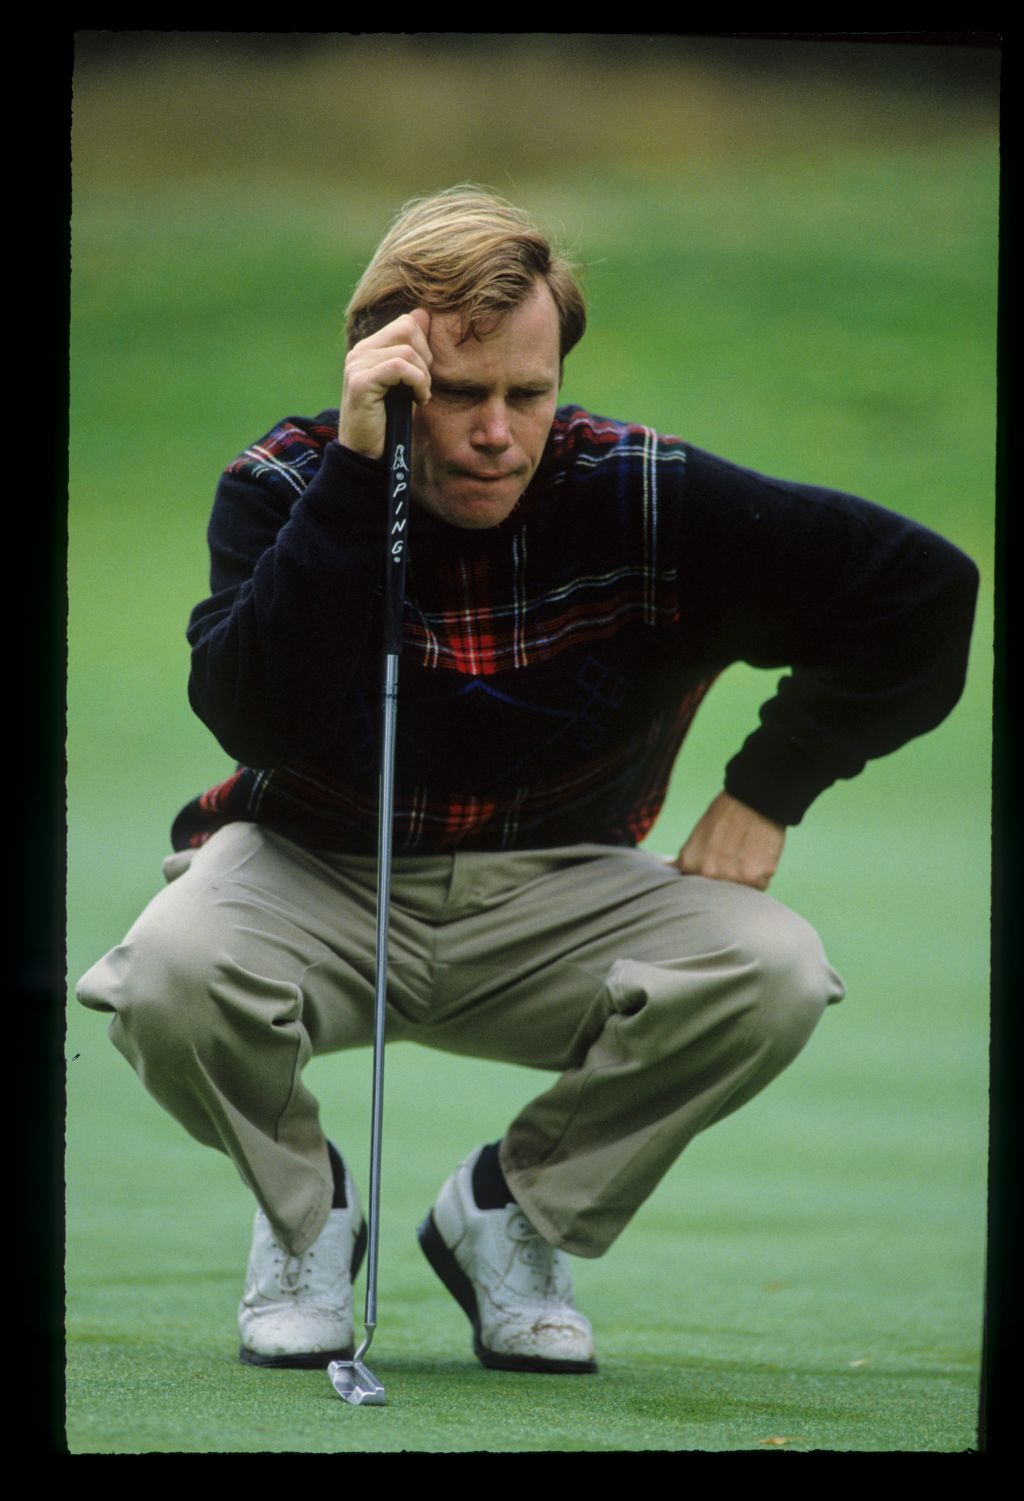 Jeff Sluman squatting to line up a putt during the 1992 Toyota World Matchplay